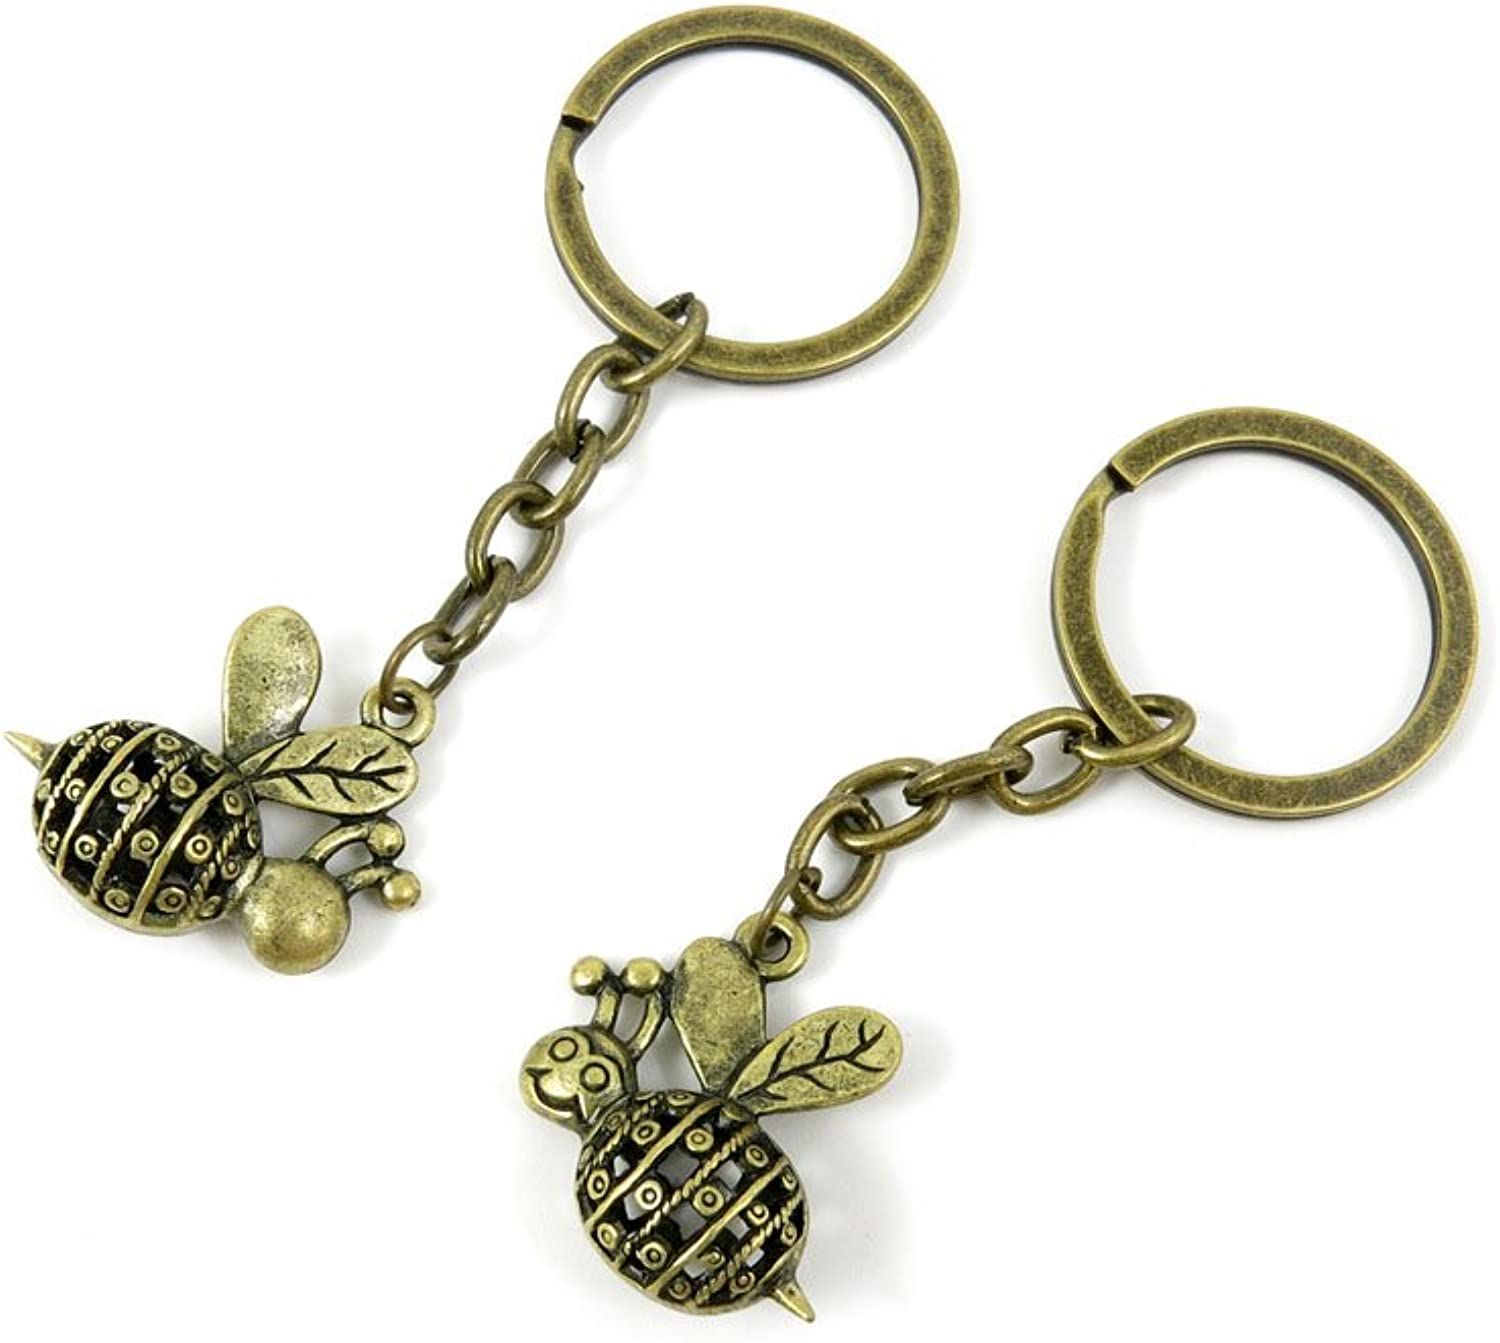 100 Pieces Fashion Jewelry Keyring Keychain Door Car Key Tag Ring Chain Supplier Supply Wholesale Bulk Lots B7NT4 Hollow Bee